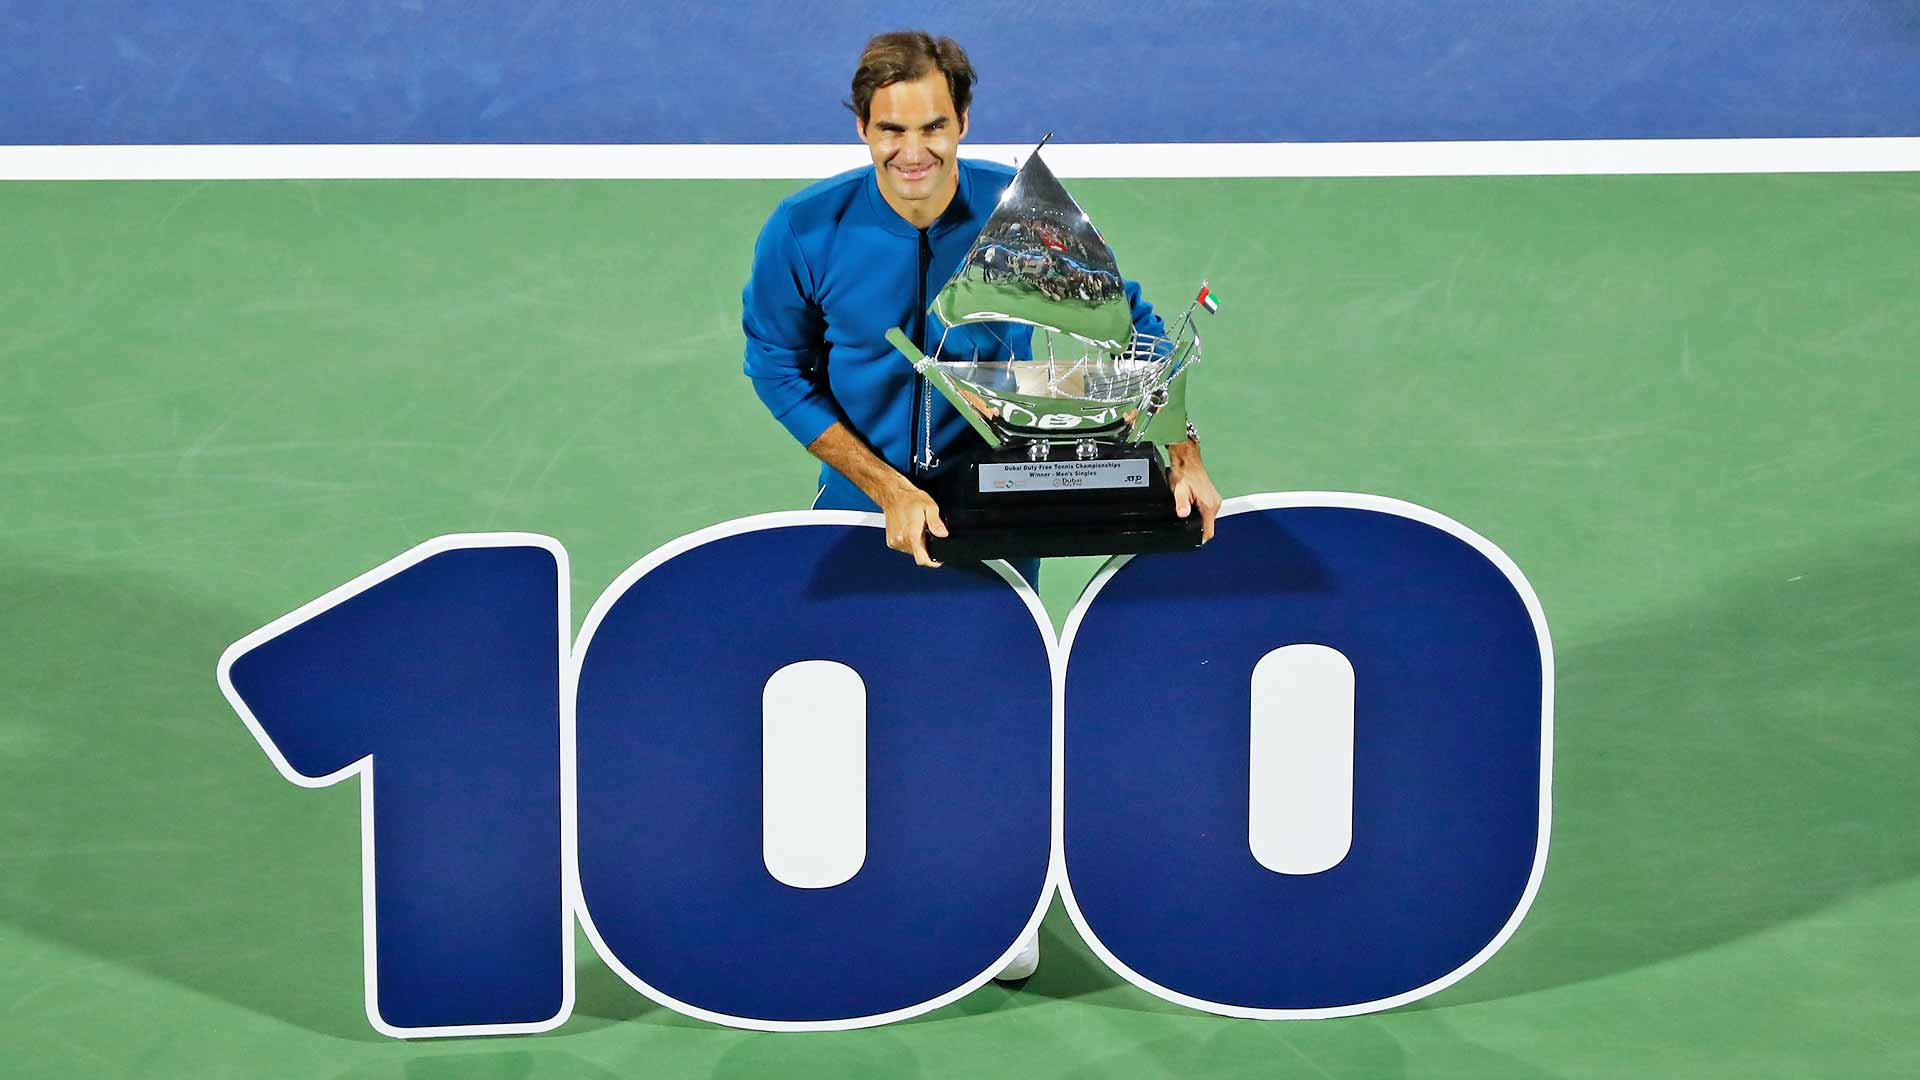 Roger Federer celebrates his 100th title after triumphing in Dubai